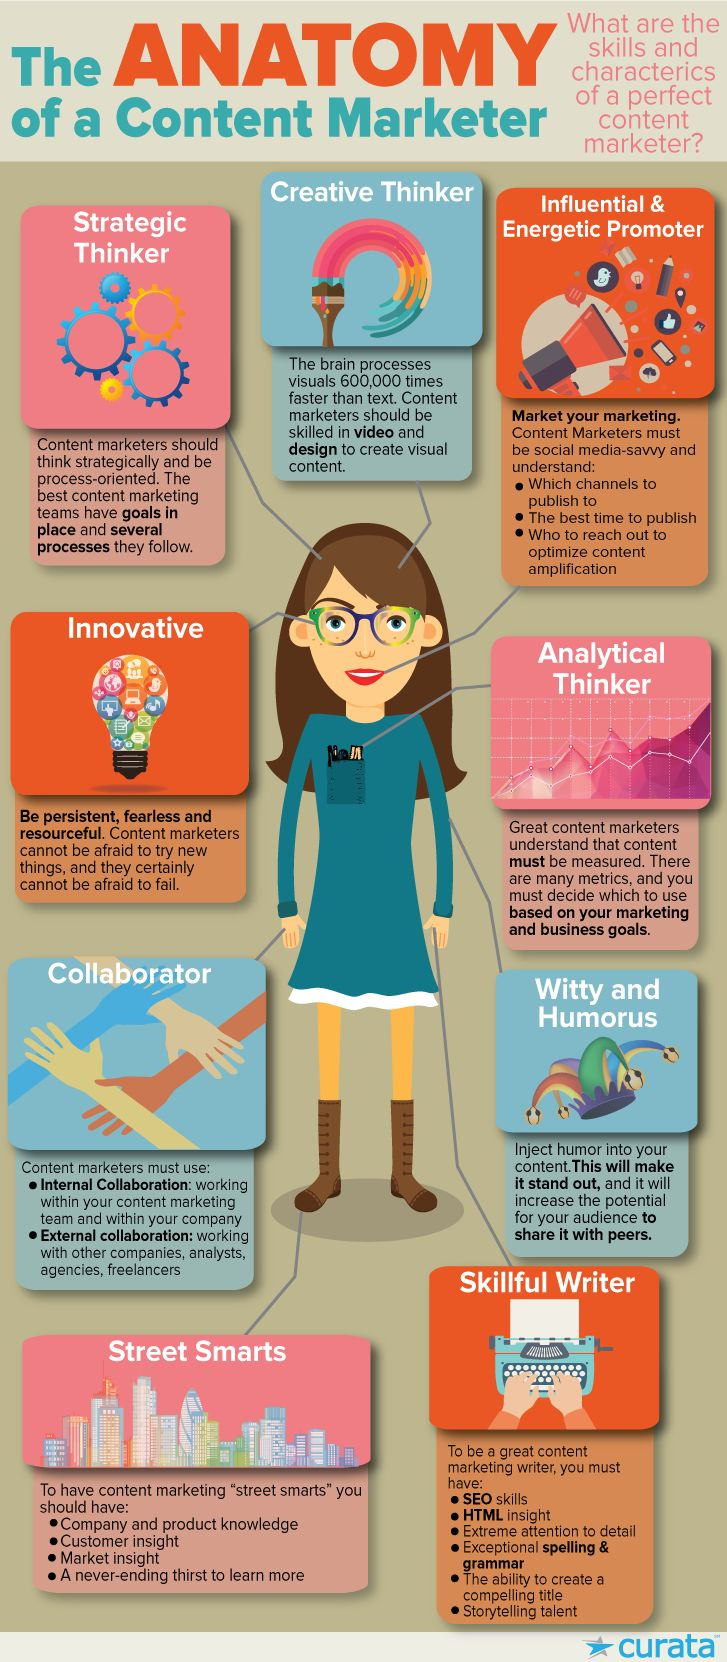 The Anatomy of a Content Marketer. #Marketing #ContentMarketer